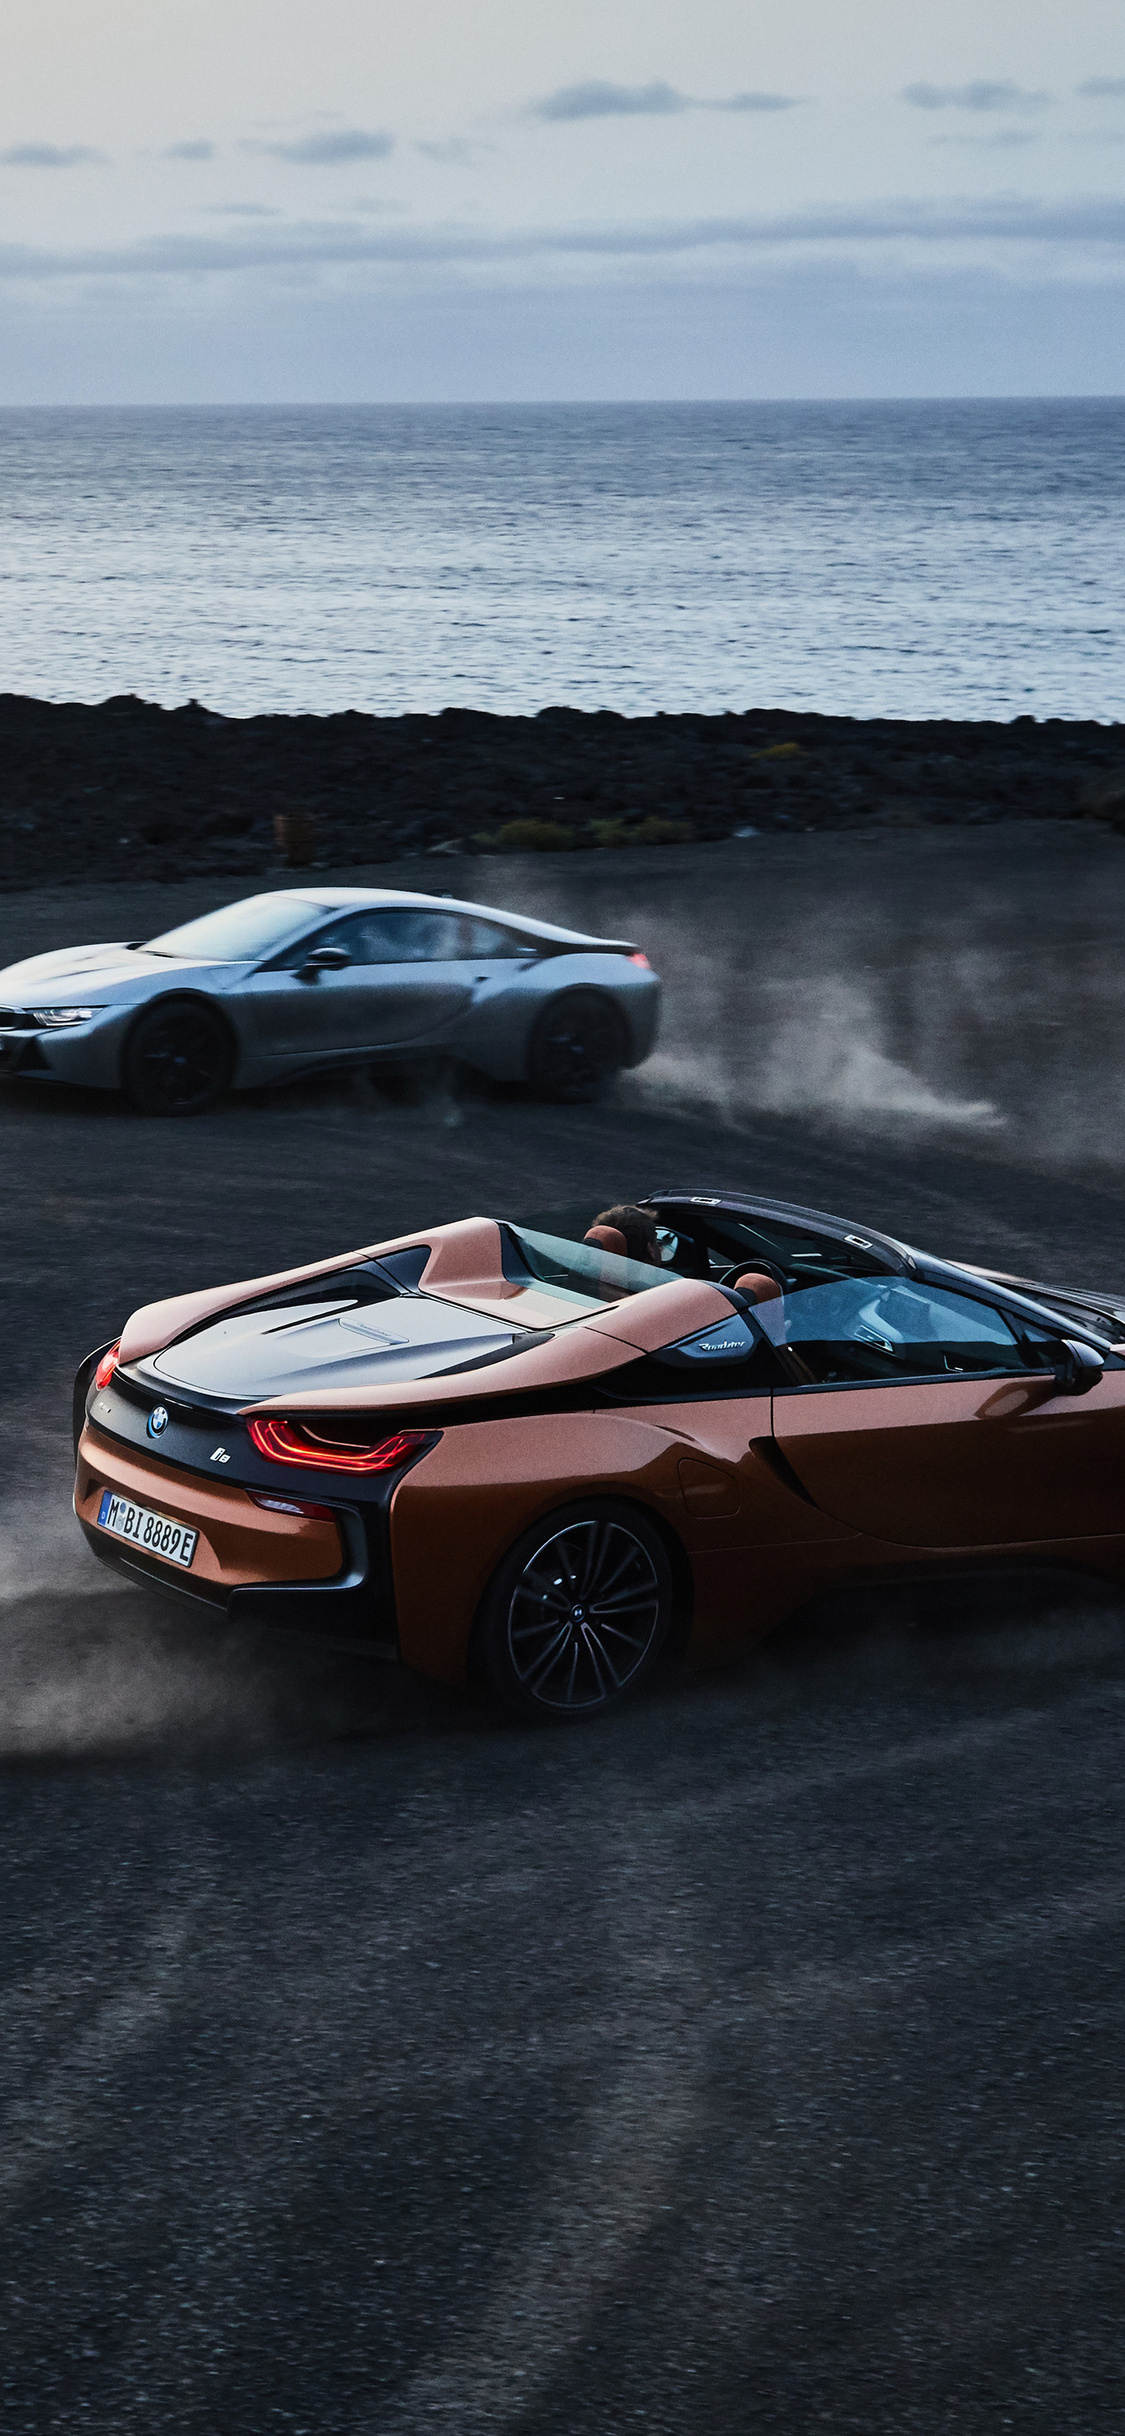 1125x2436 Bmw I8 2018 Coupe Iphone Xs Iphone 10 Iphone X Hd 4k